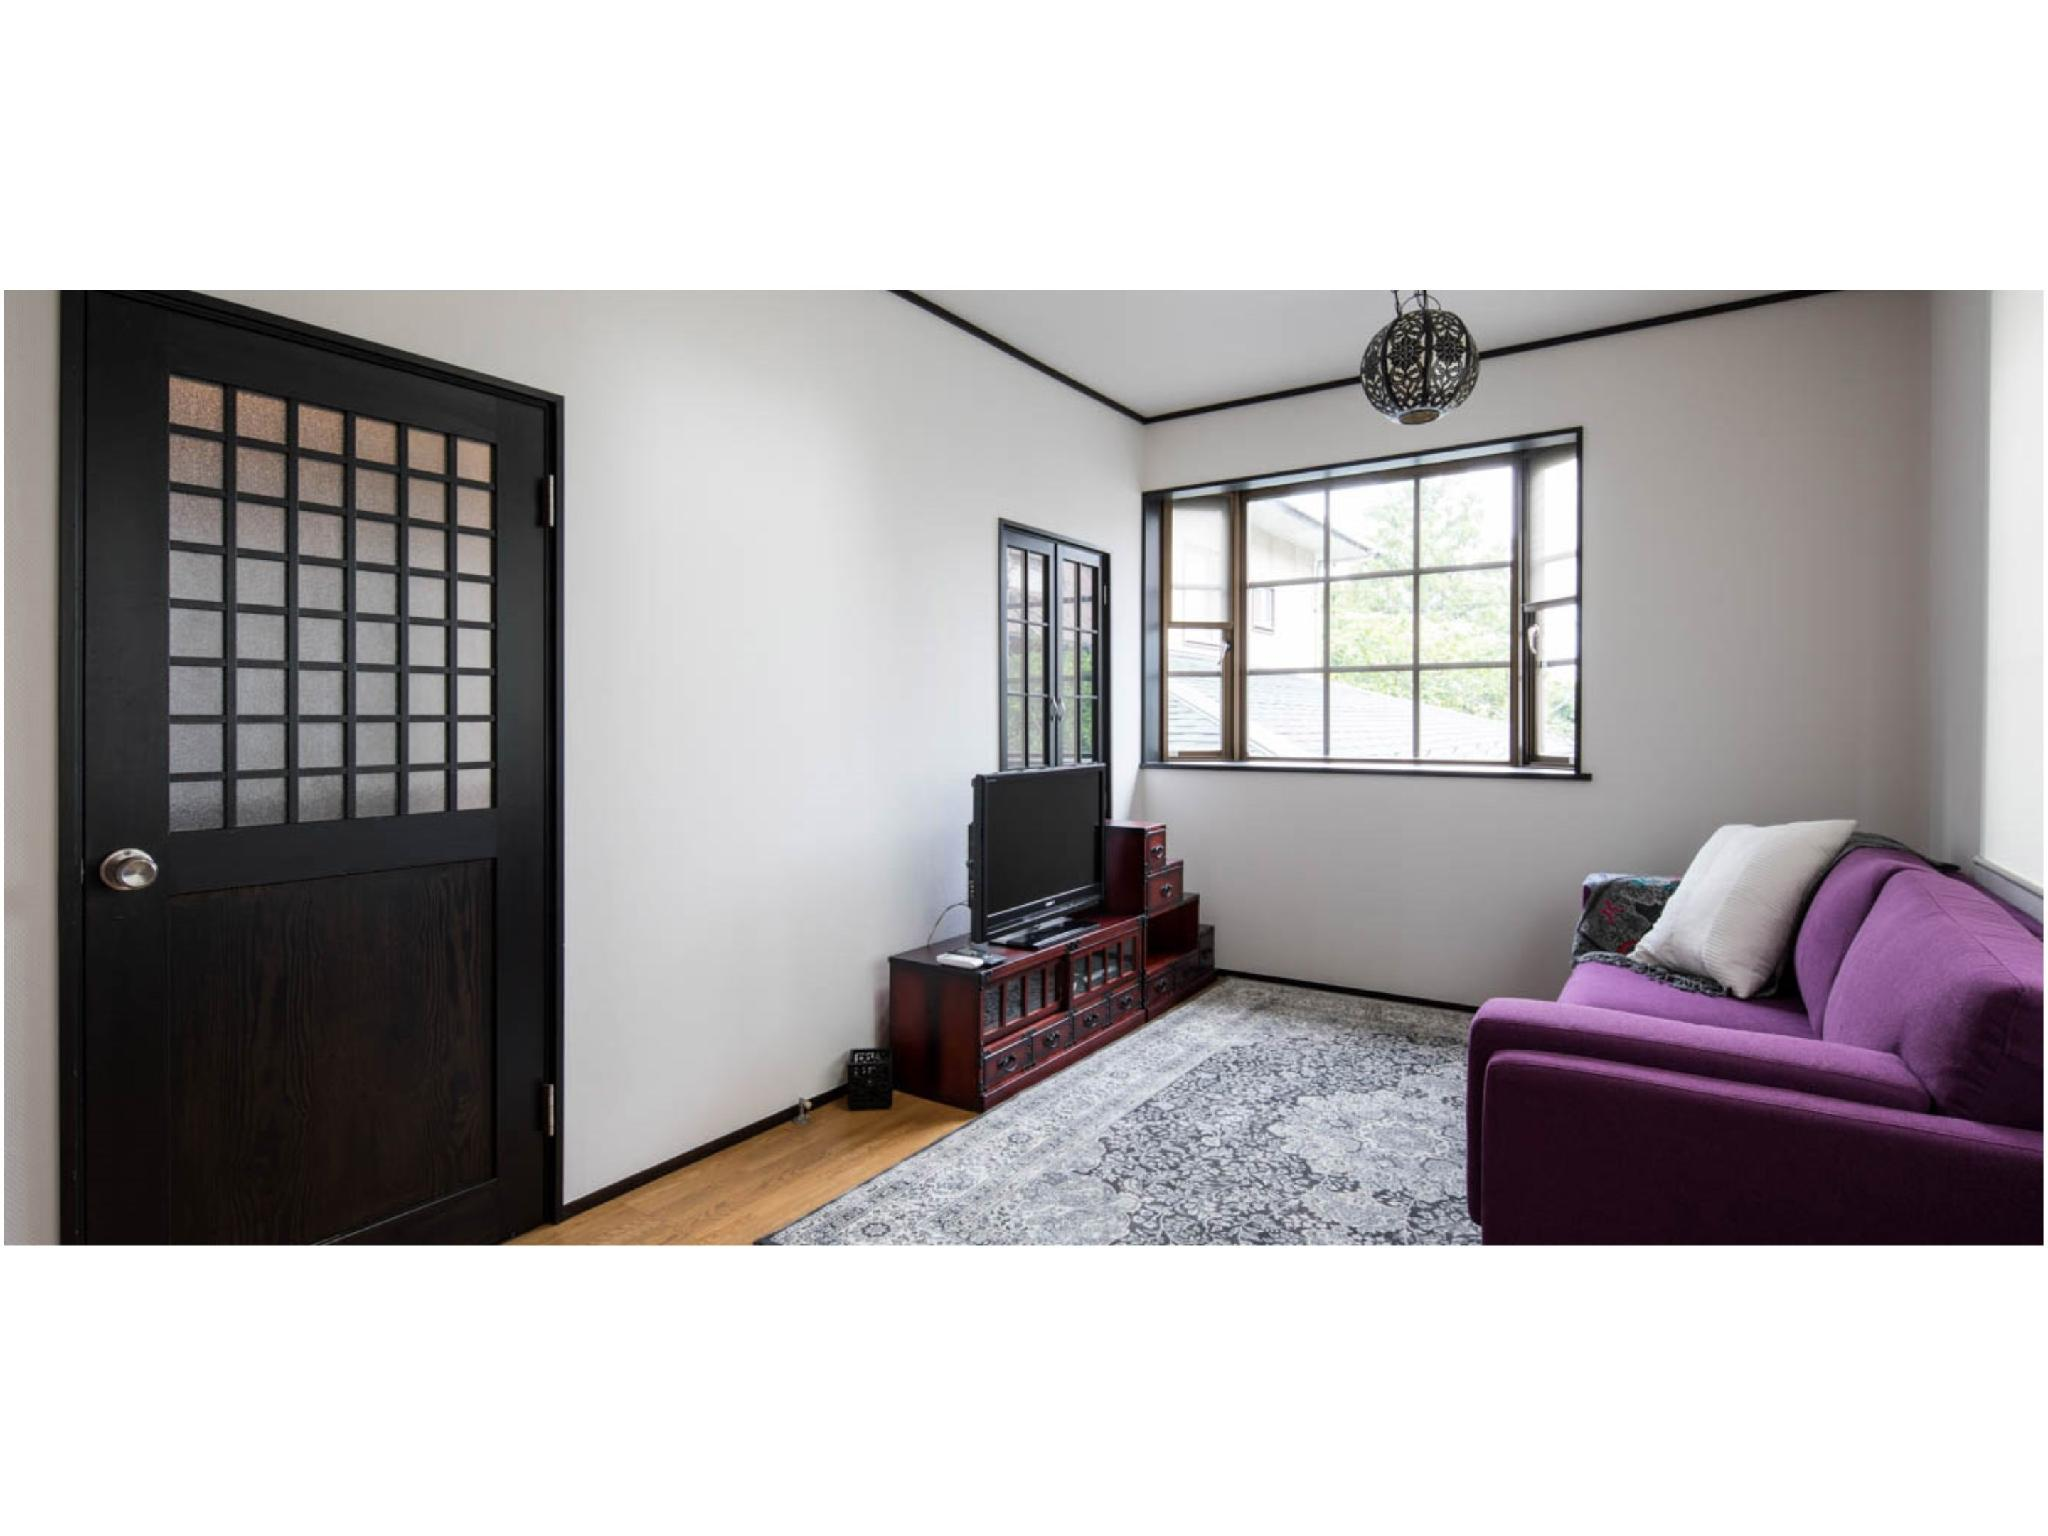 Vacation Rental Purple Sofa House Kamakura Zushi, Zushi